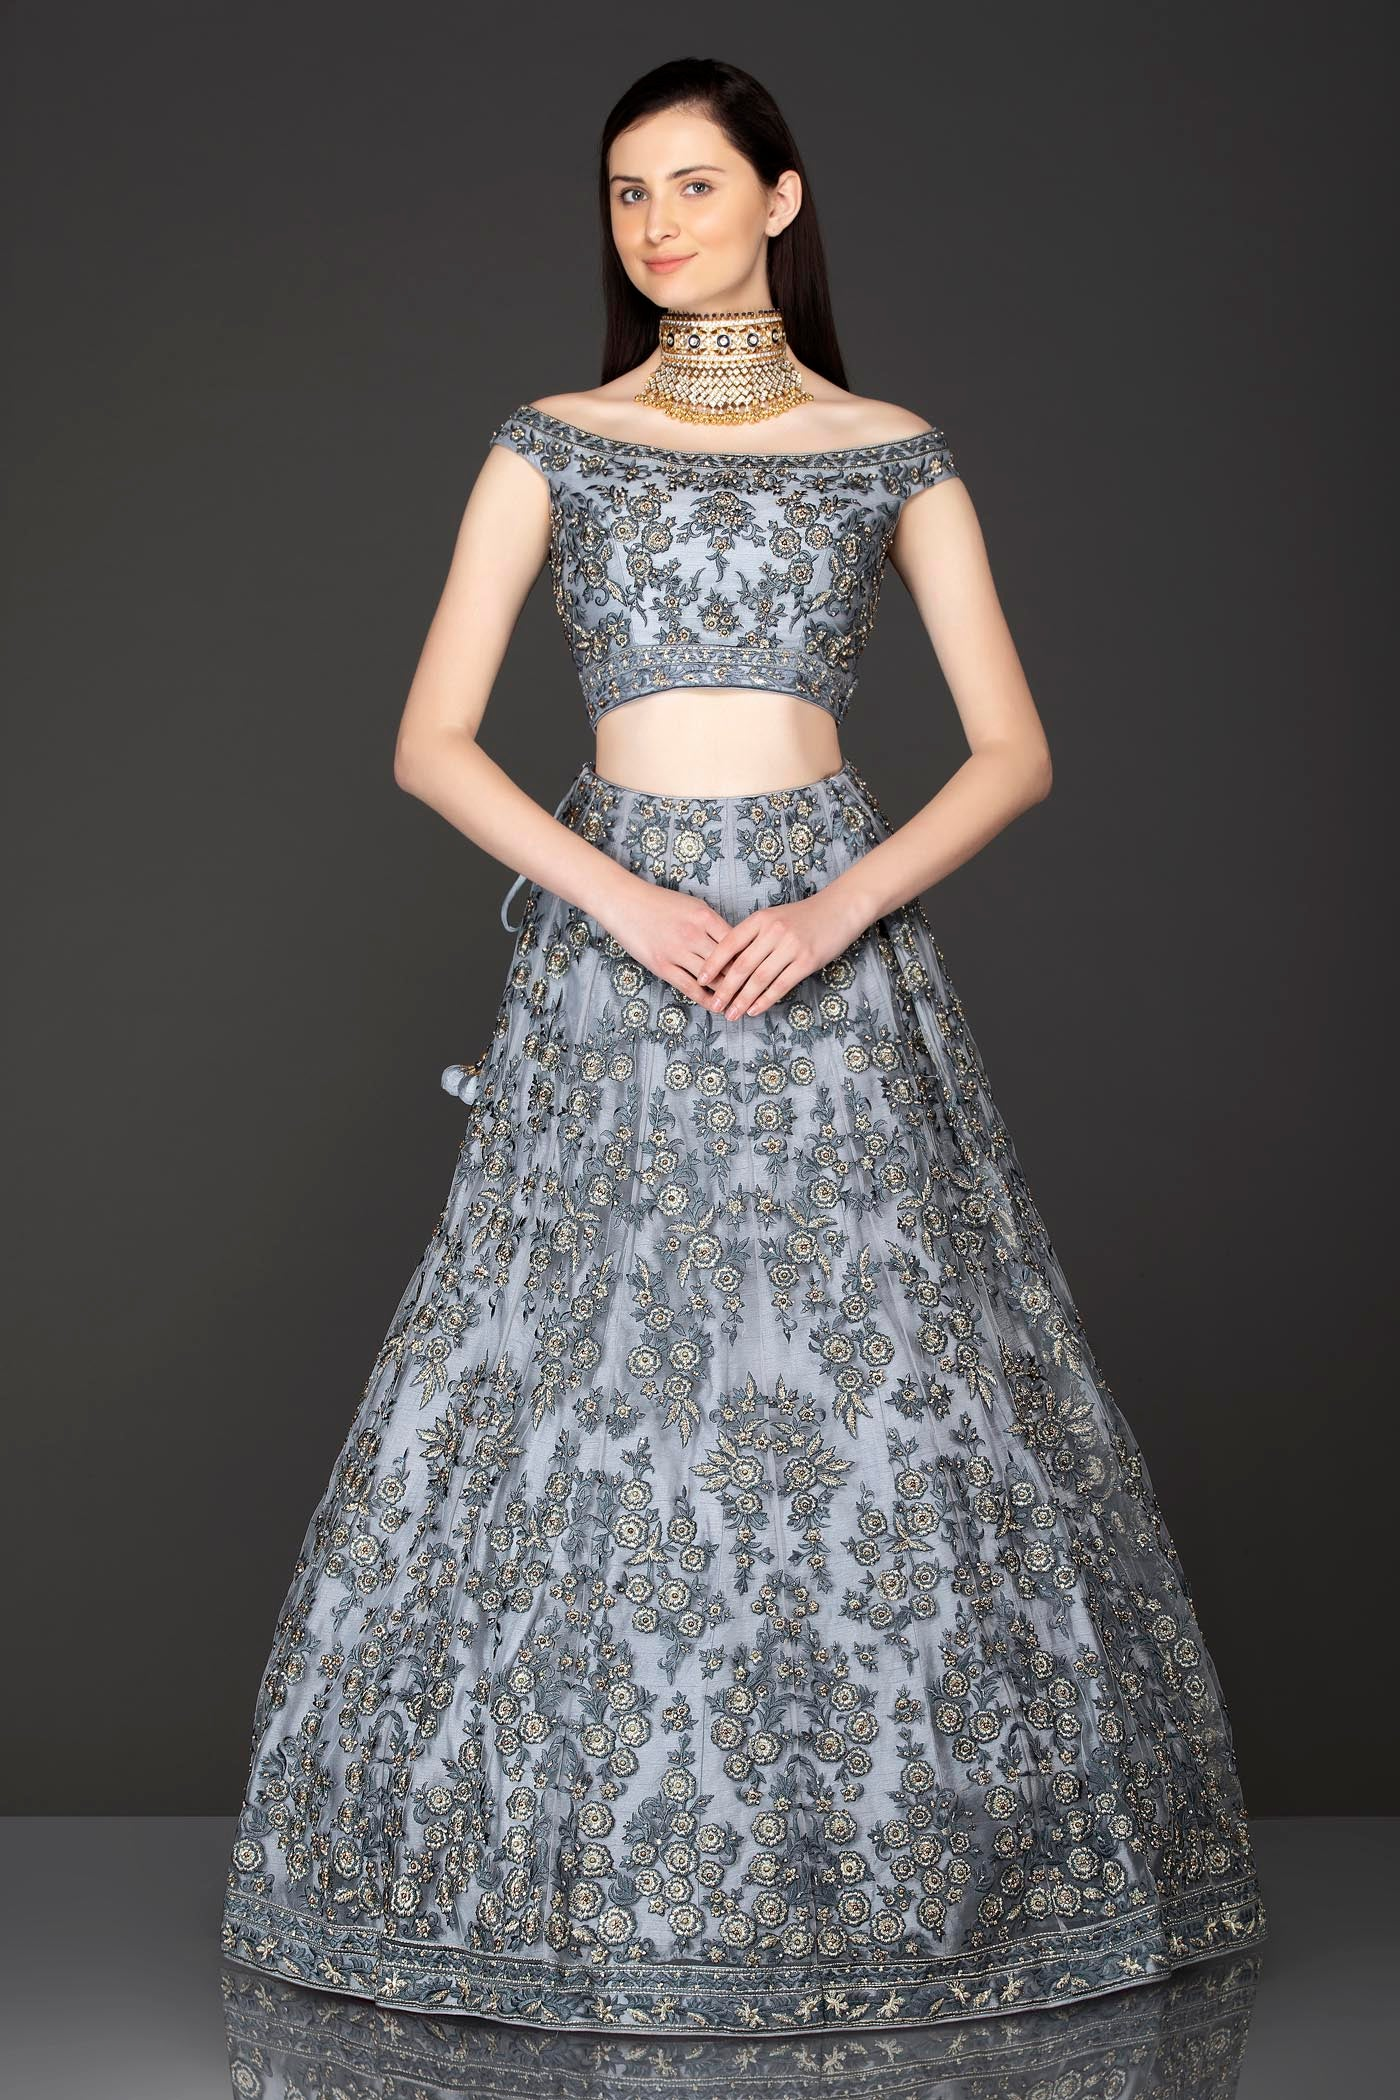 Grey Net Lehenga Top With Grey Resham/Thread Embriodery Highlighted With Silver Stones